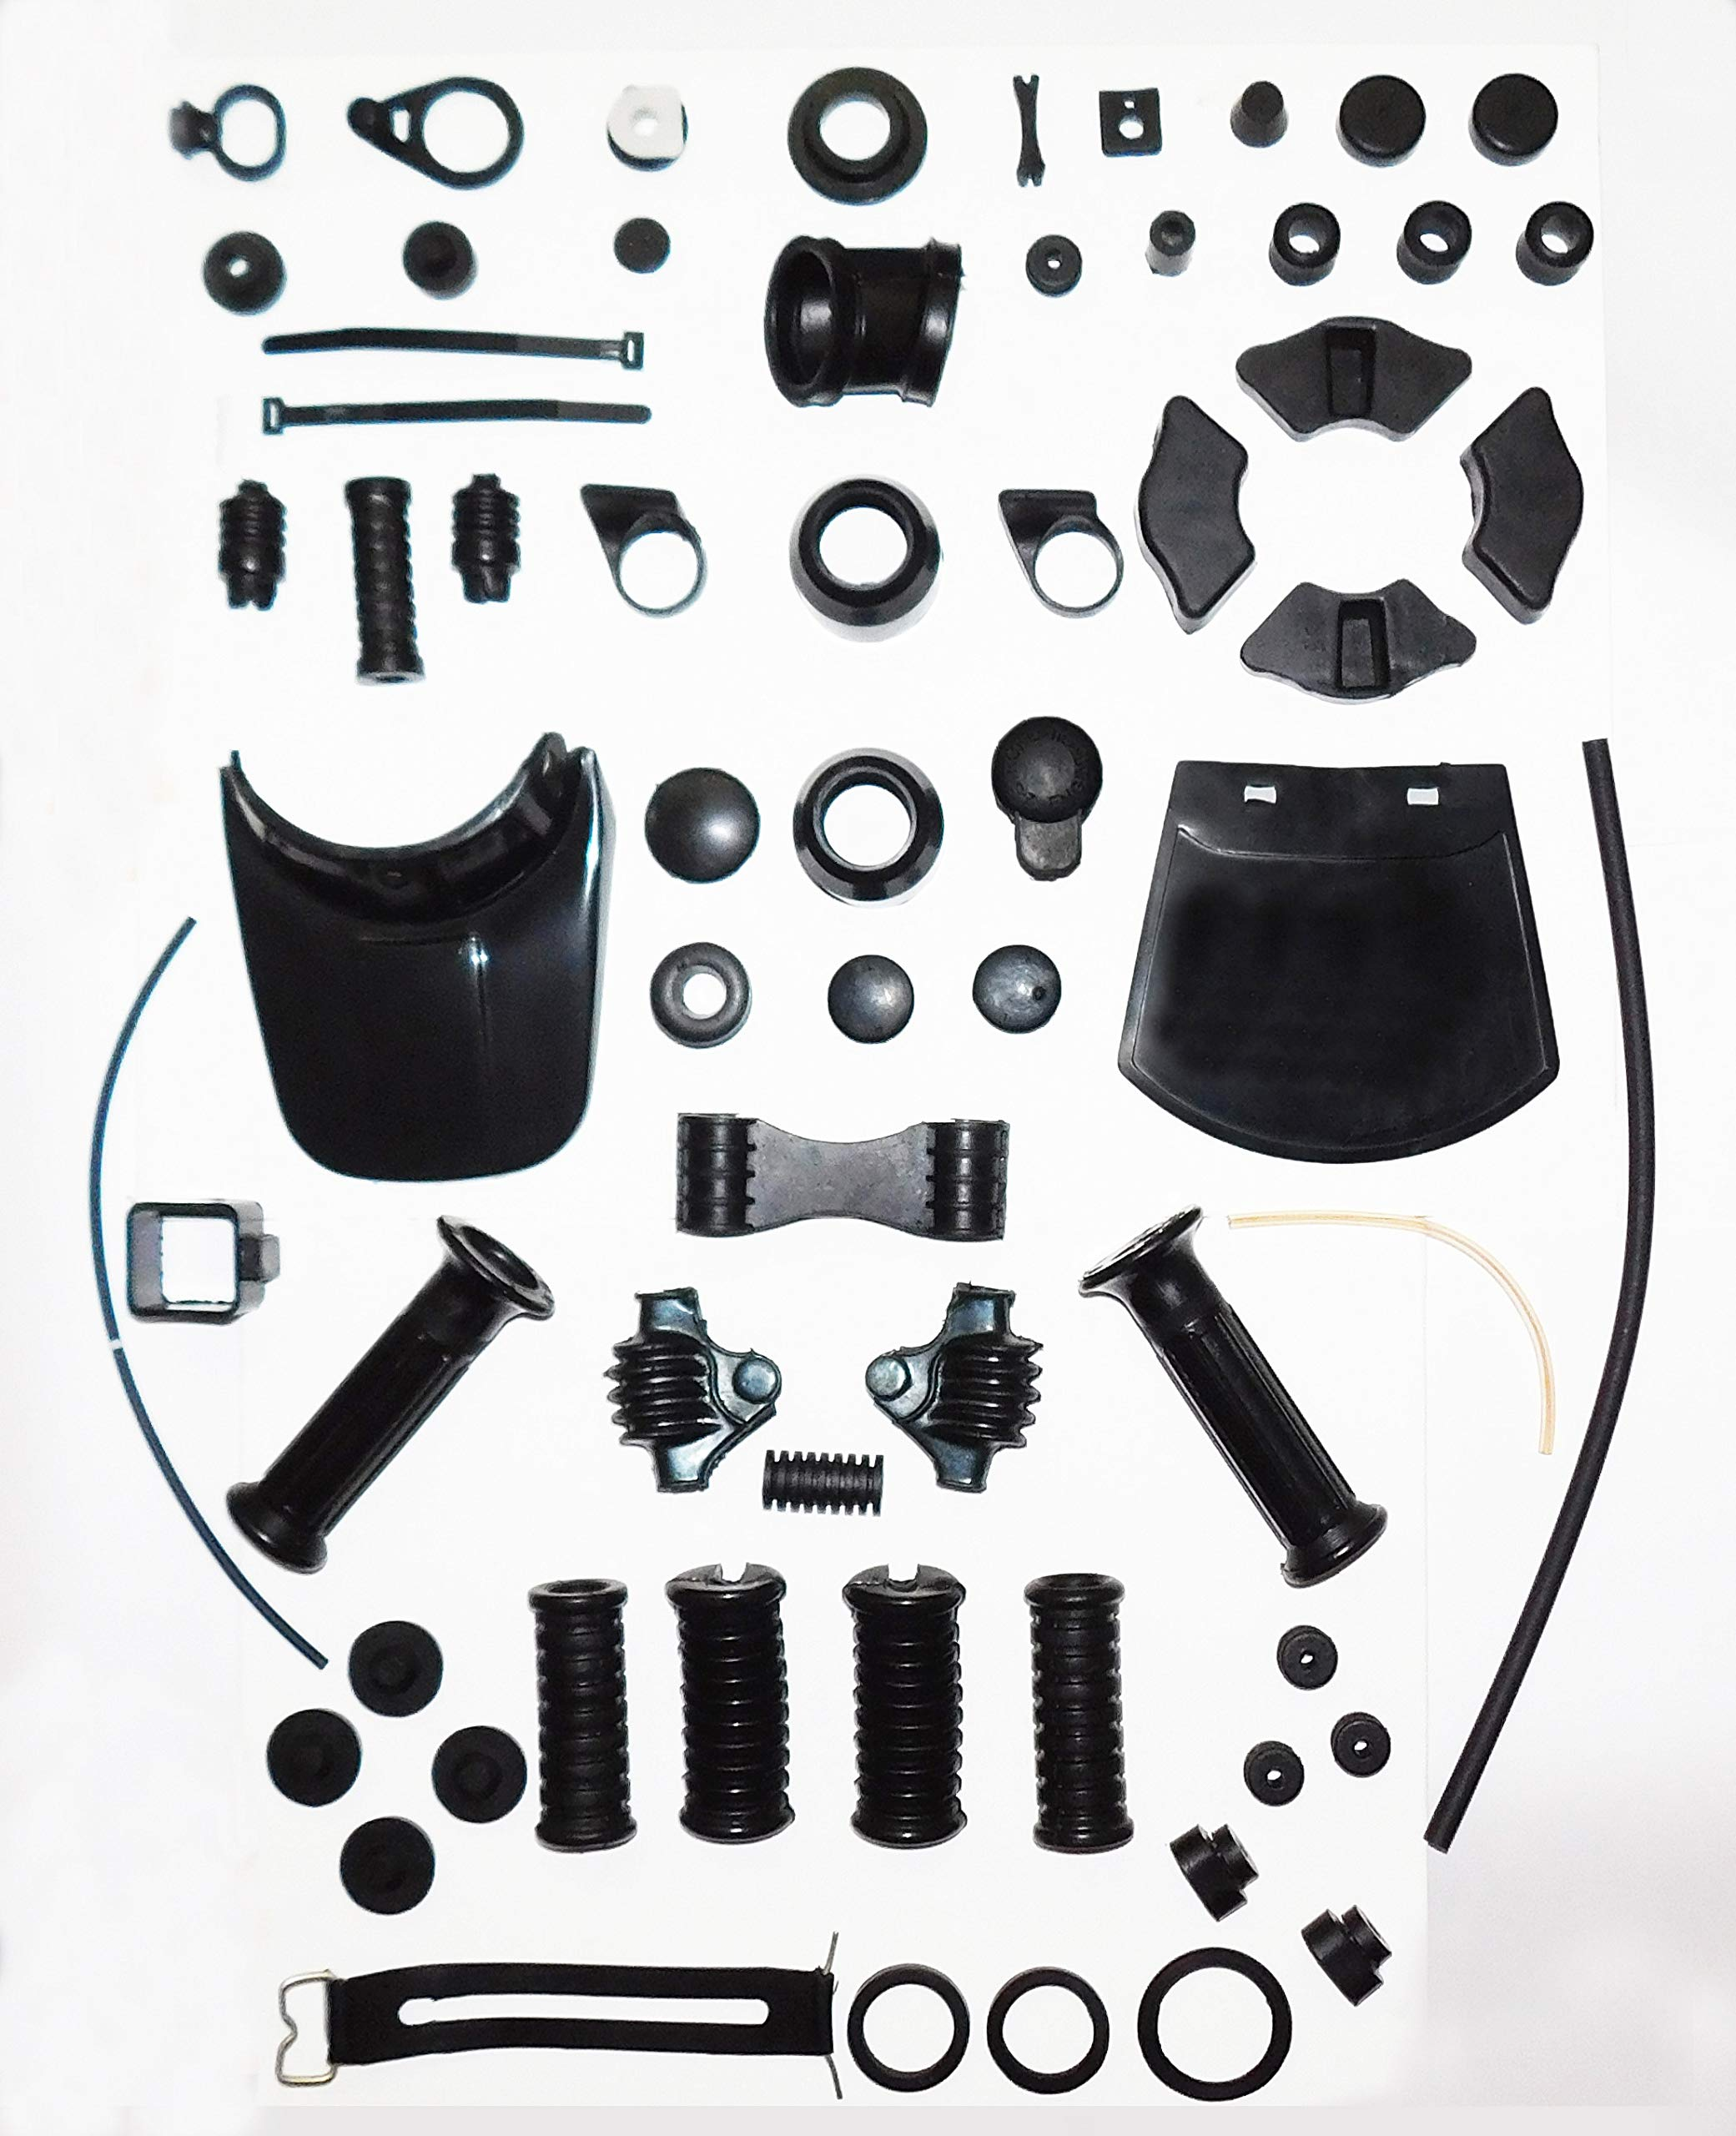 YAMAHA RX100 RS100 RX125 FULL RUBBER GROMMET KIT - HUB RUBBER MUD FLAP GRIP FOOTREST COVERS